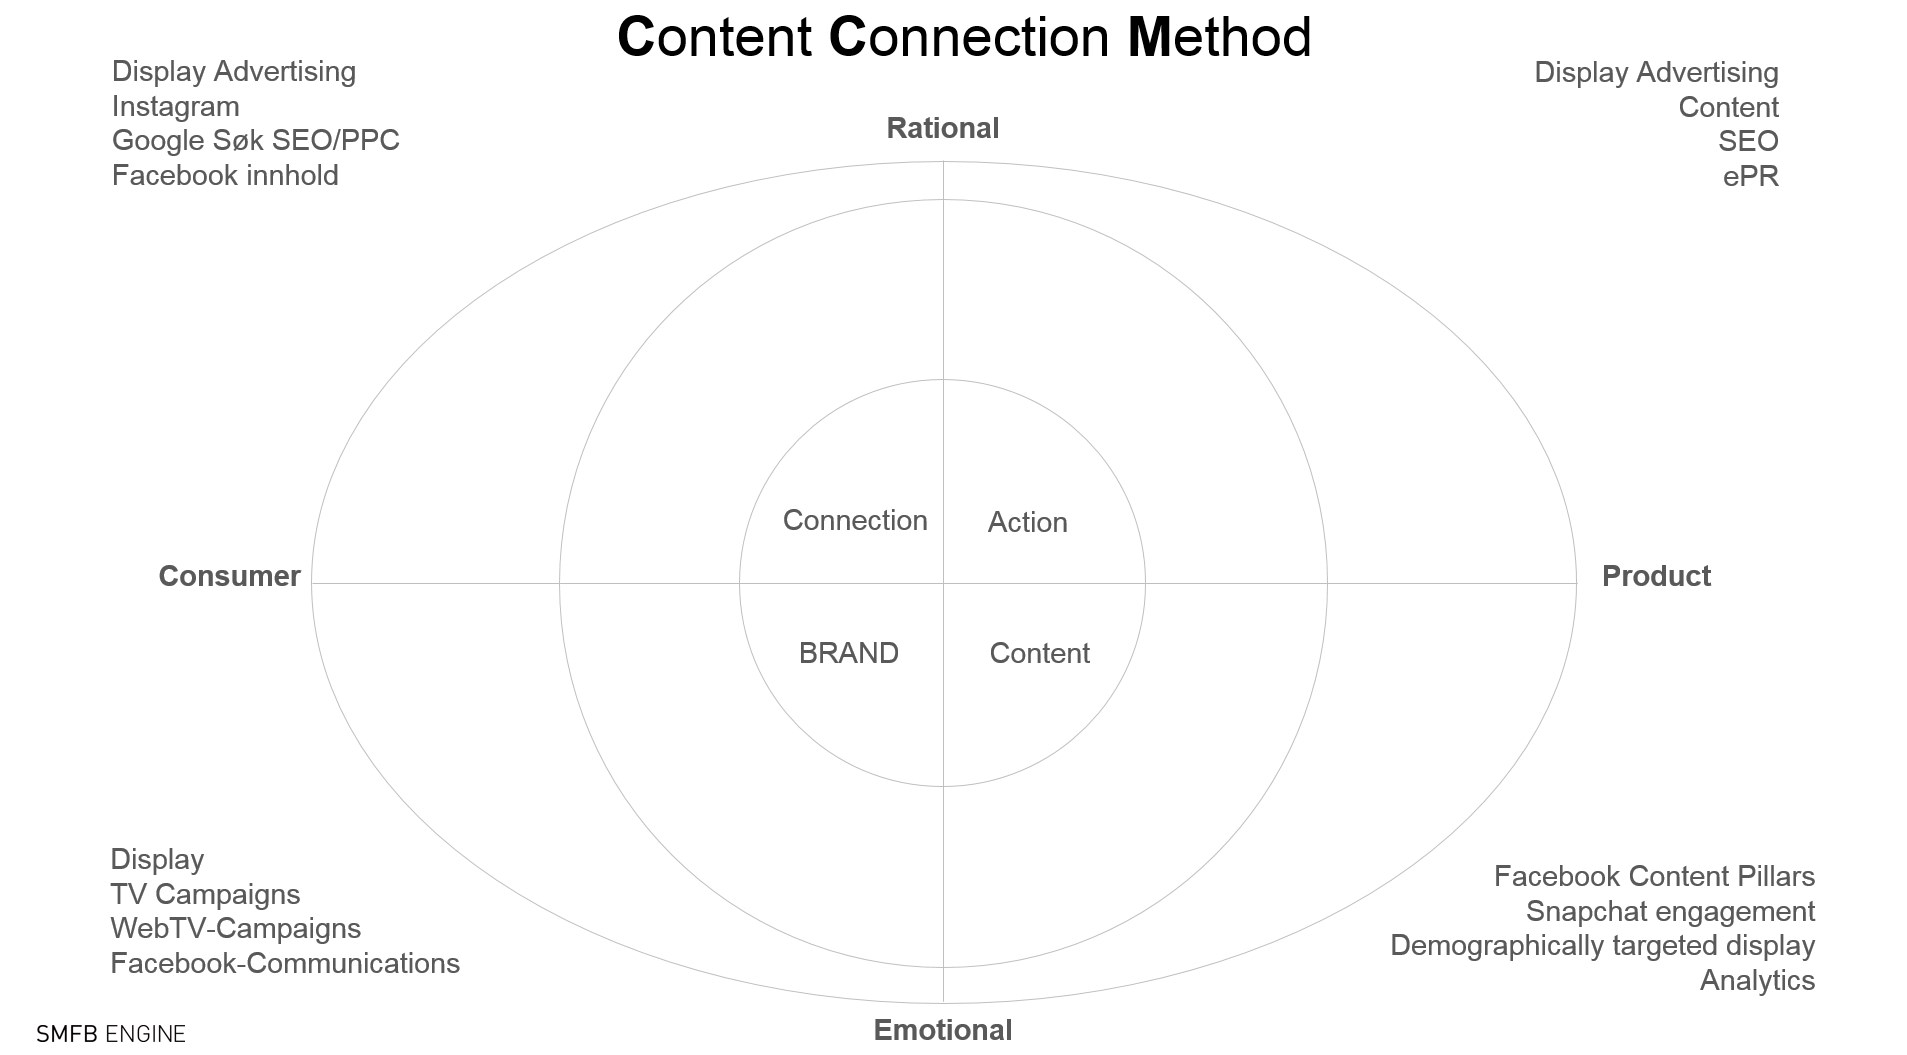 Content Connection Method for Content Marketing